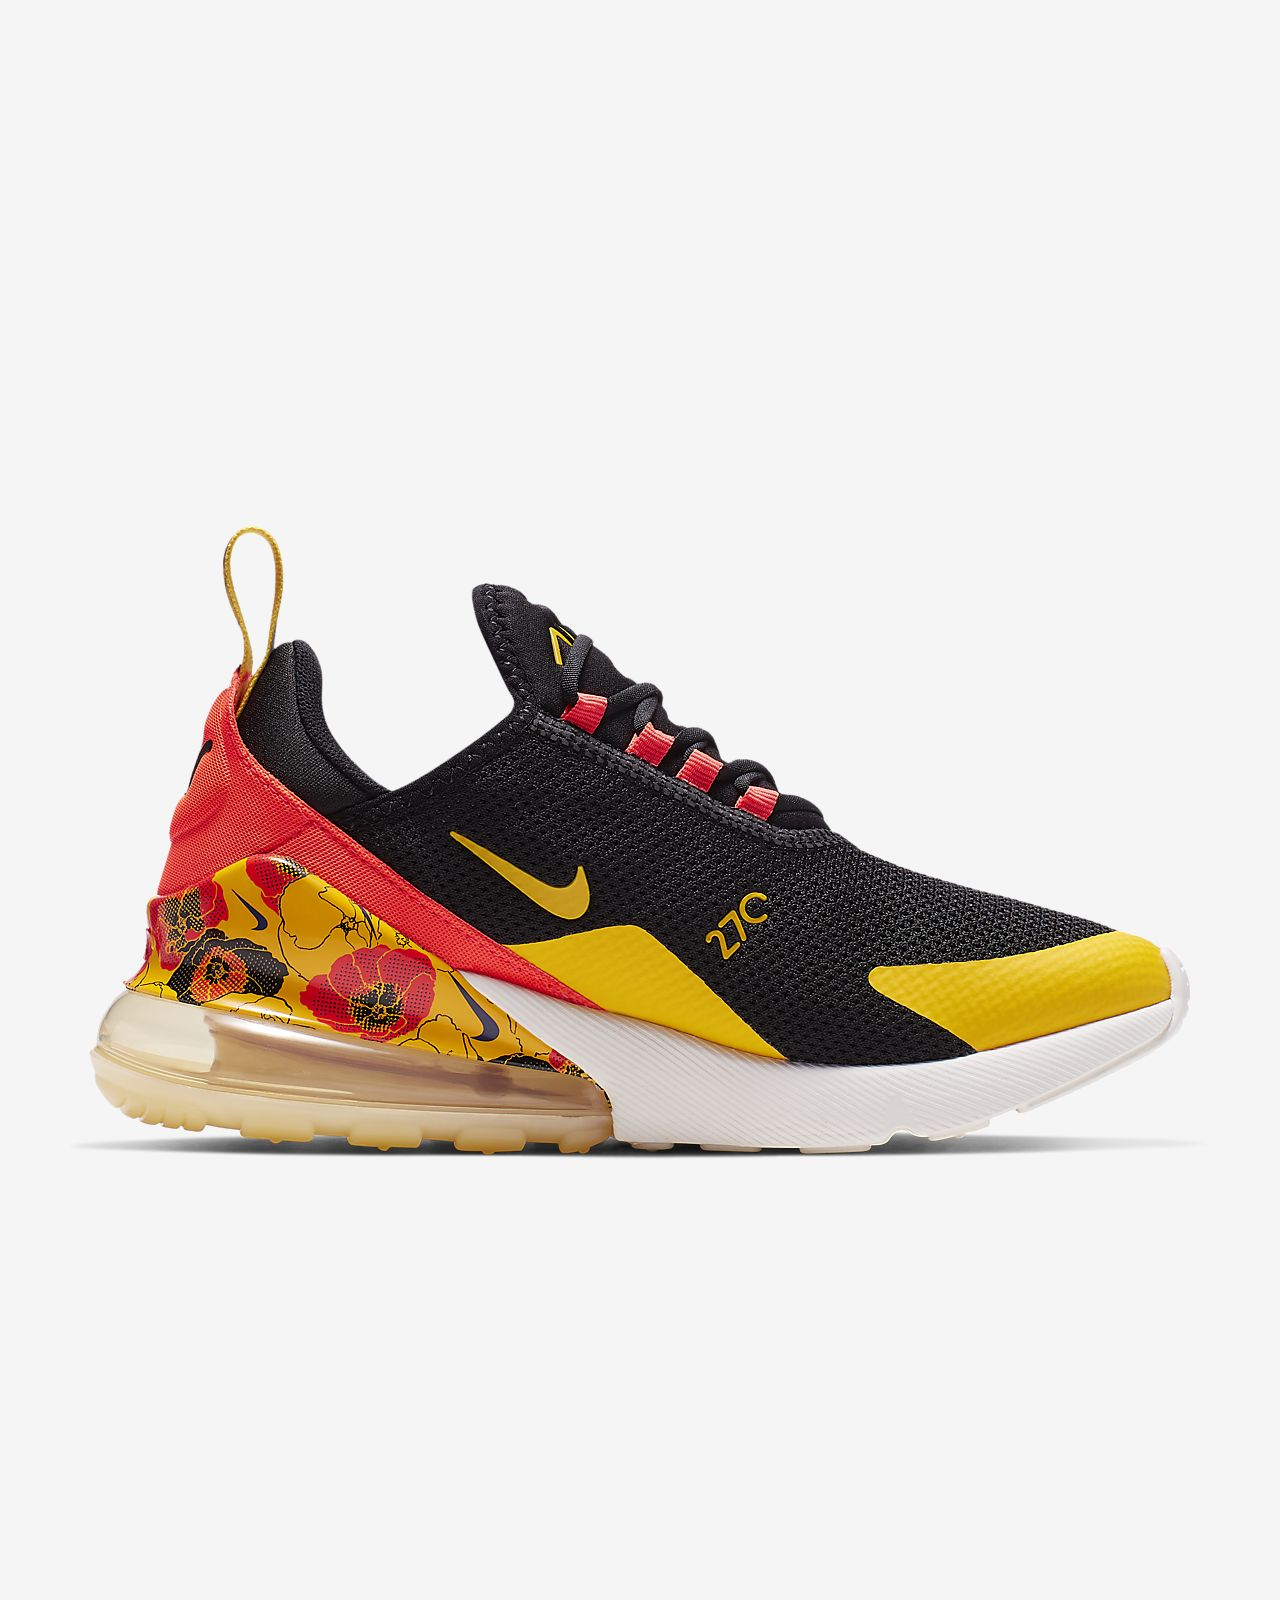 20c7b102d13 Low Resolution Nike Air Max 270 SE Floral Women s Shoe Nike Air Max 270 SE  Floral Women s Shoe